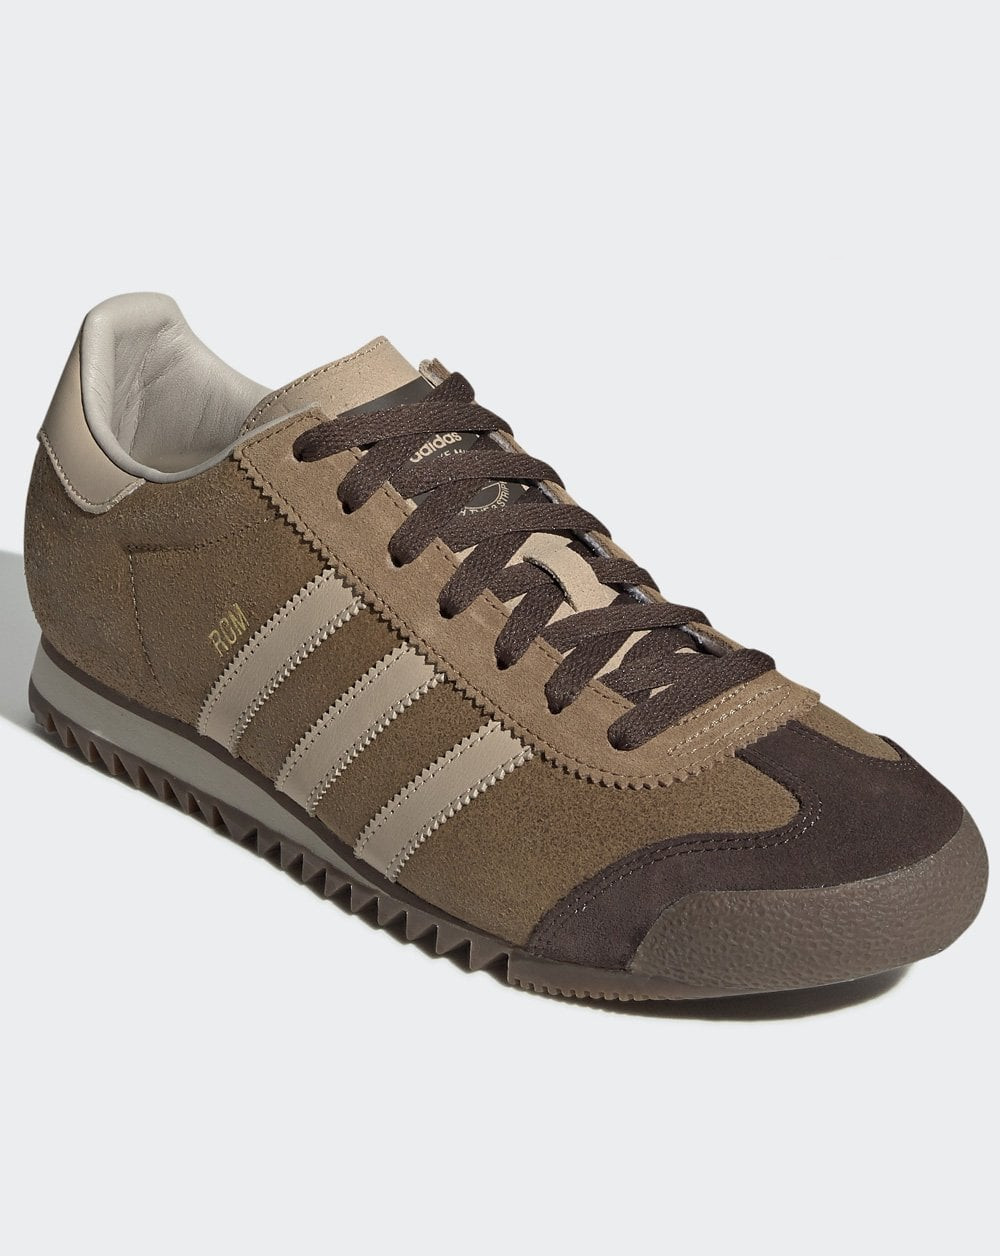 adidas Rom trainer brown